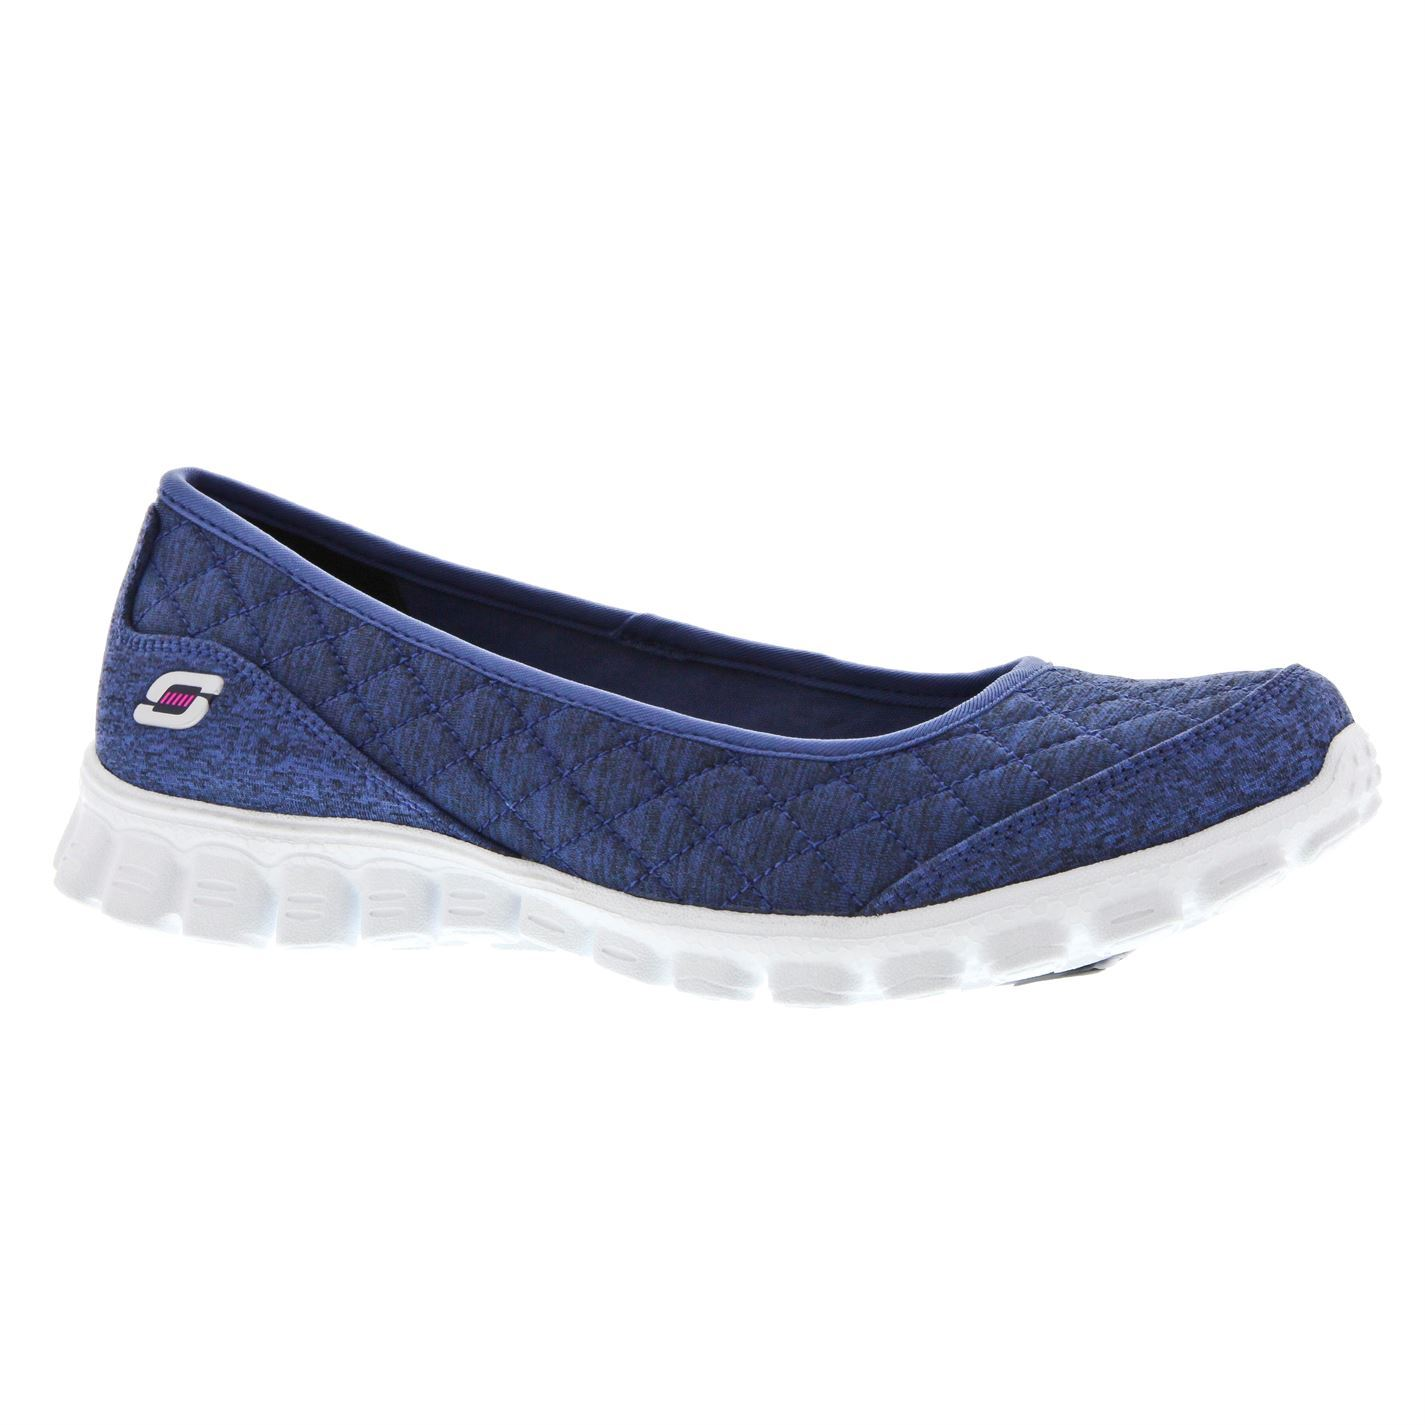 Skechers EZ Flex 2 2 2 Slip On Trainers Ladies scarpe donna Footwear a34c7c